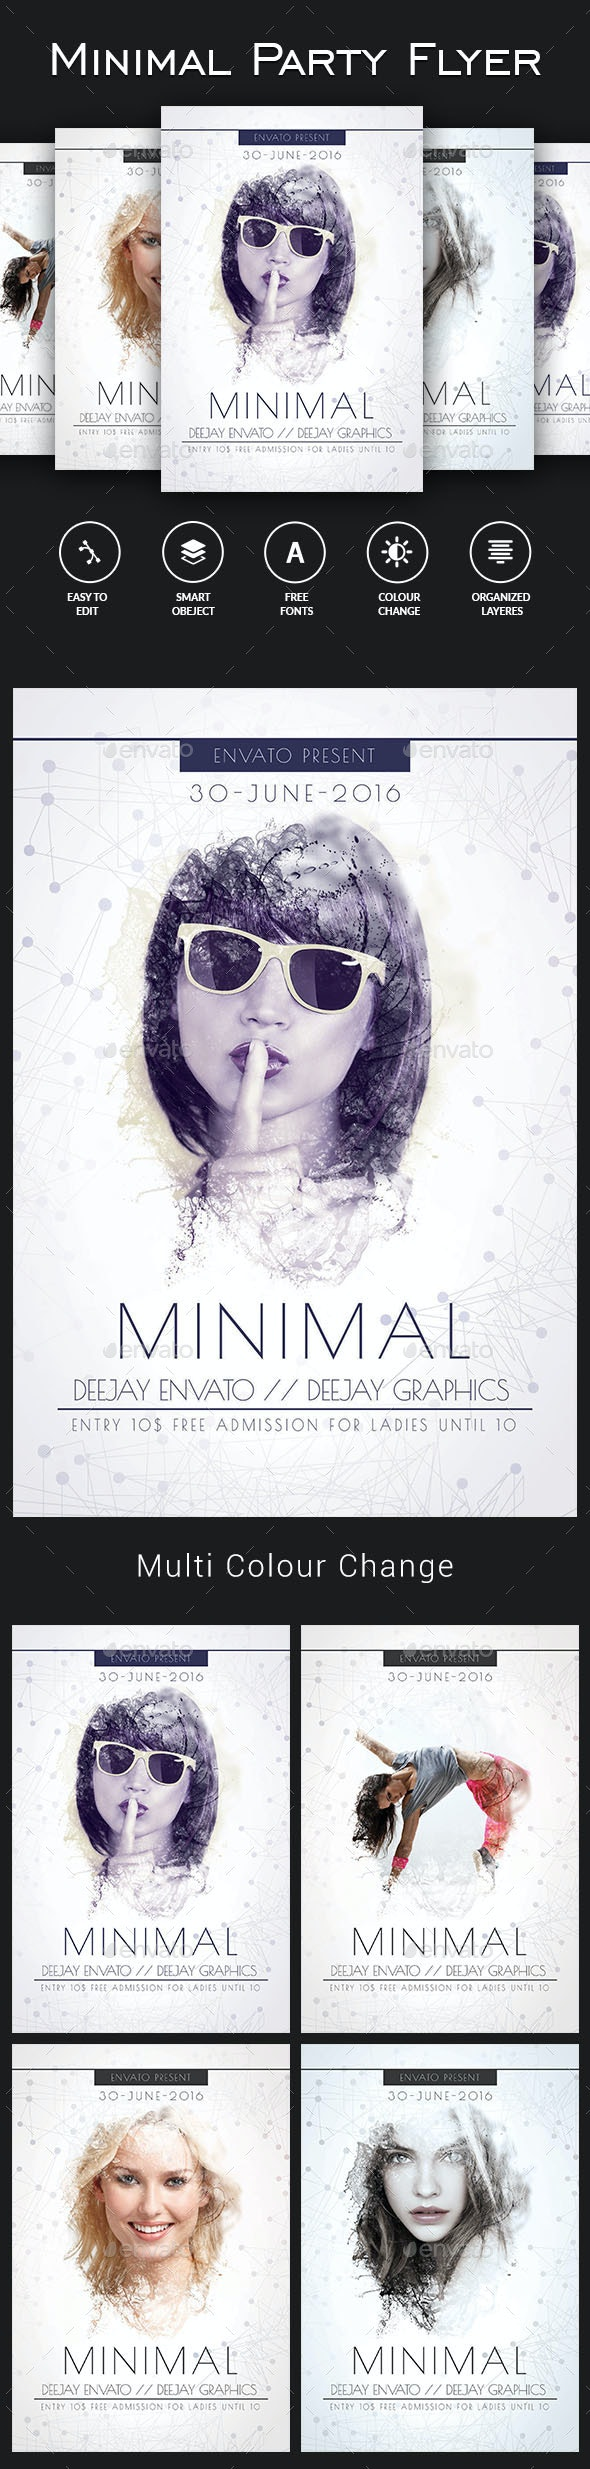 Minimal Party Flyer Template - Clubs & Parties Events